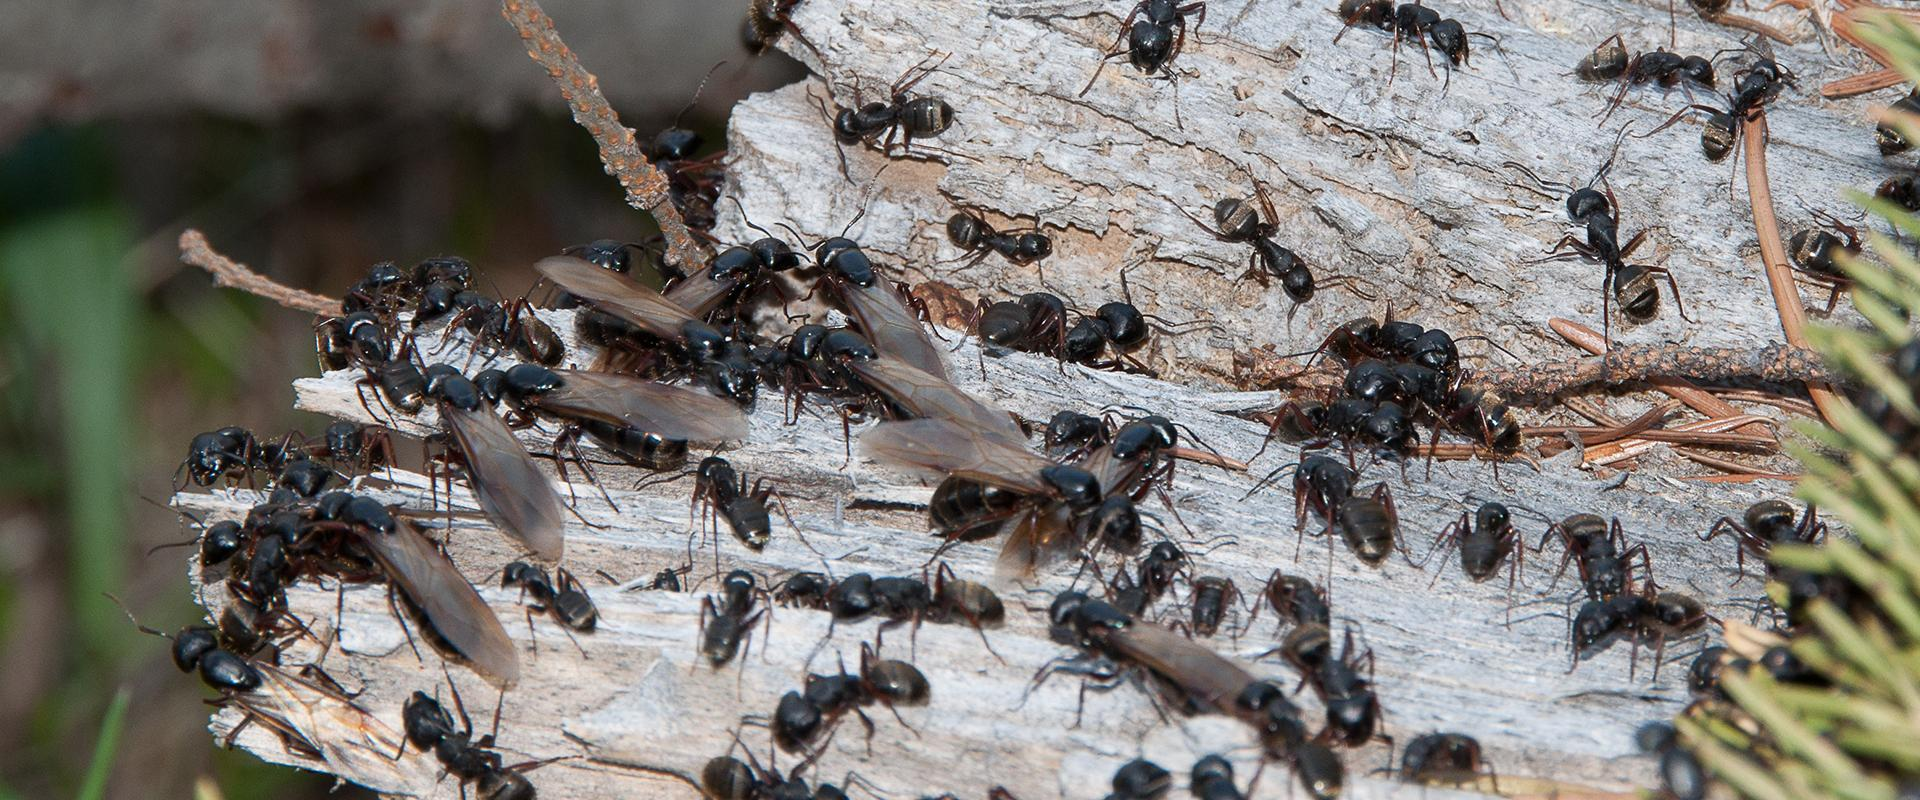 ants on wood in oklahoma city